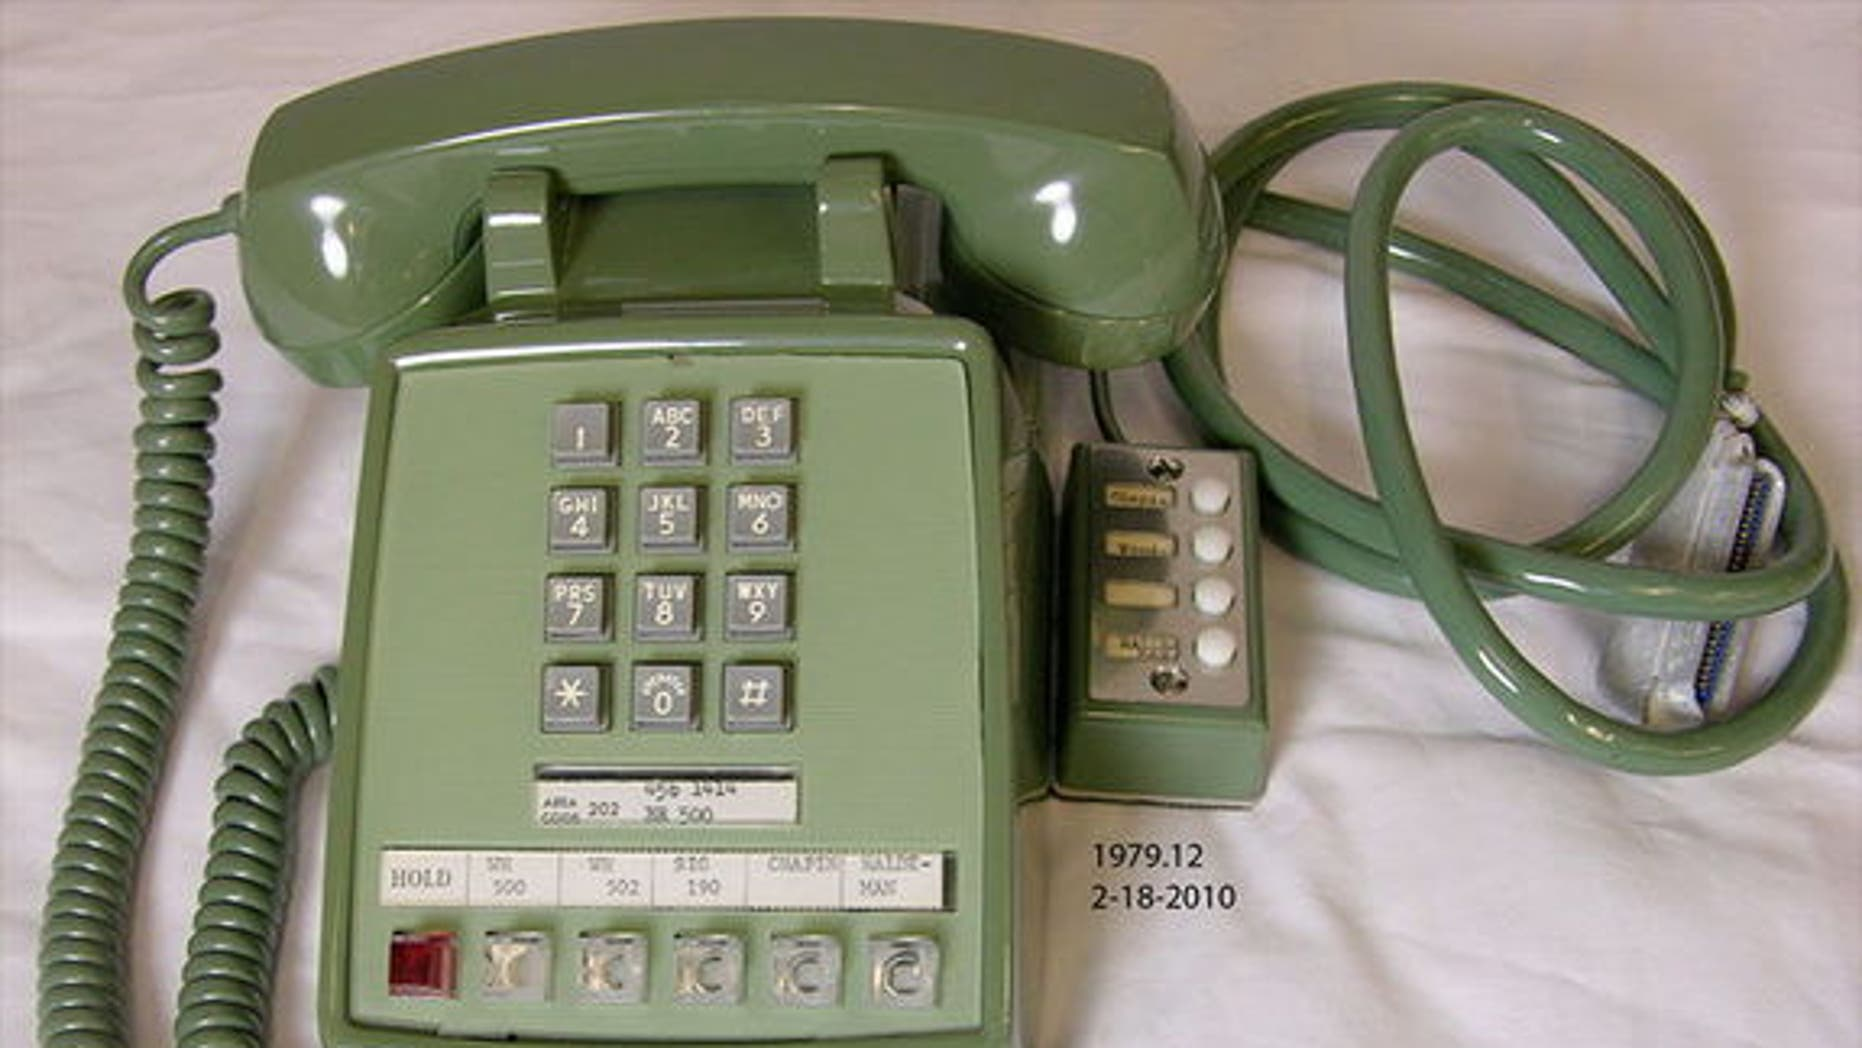 On July 20, 1969, President Richard M. Nixon used this olive green telephone to talk to the first astronauts on the moon. The same phone is now on display at the National Archives in Washington, D.C.